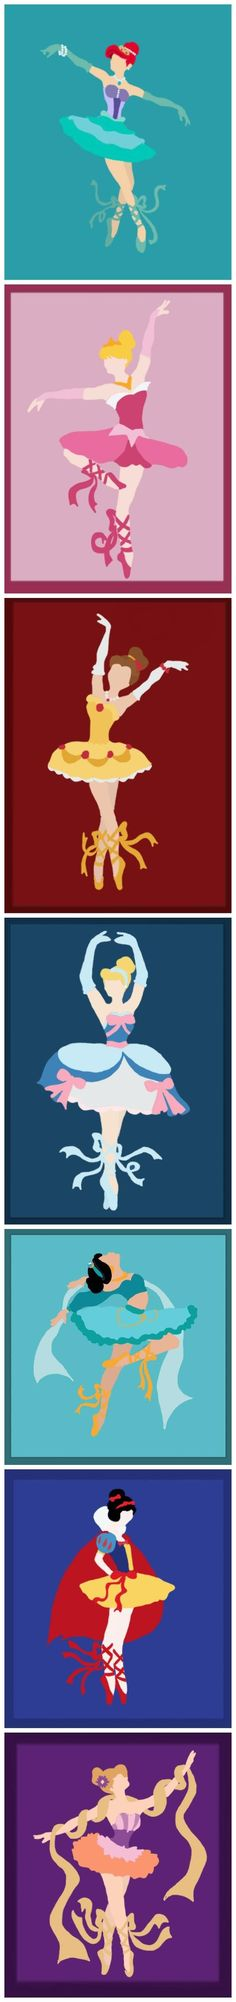 Disney princesses as ballerinas! If I have a little girl one day, these will go in frames in her bedroom!!